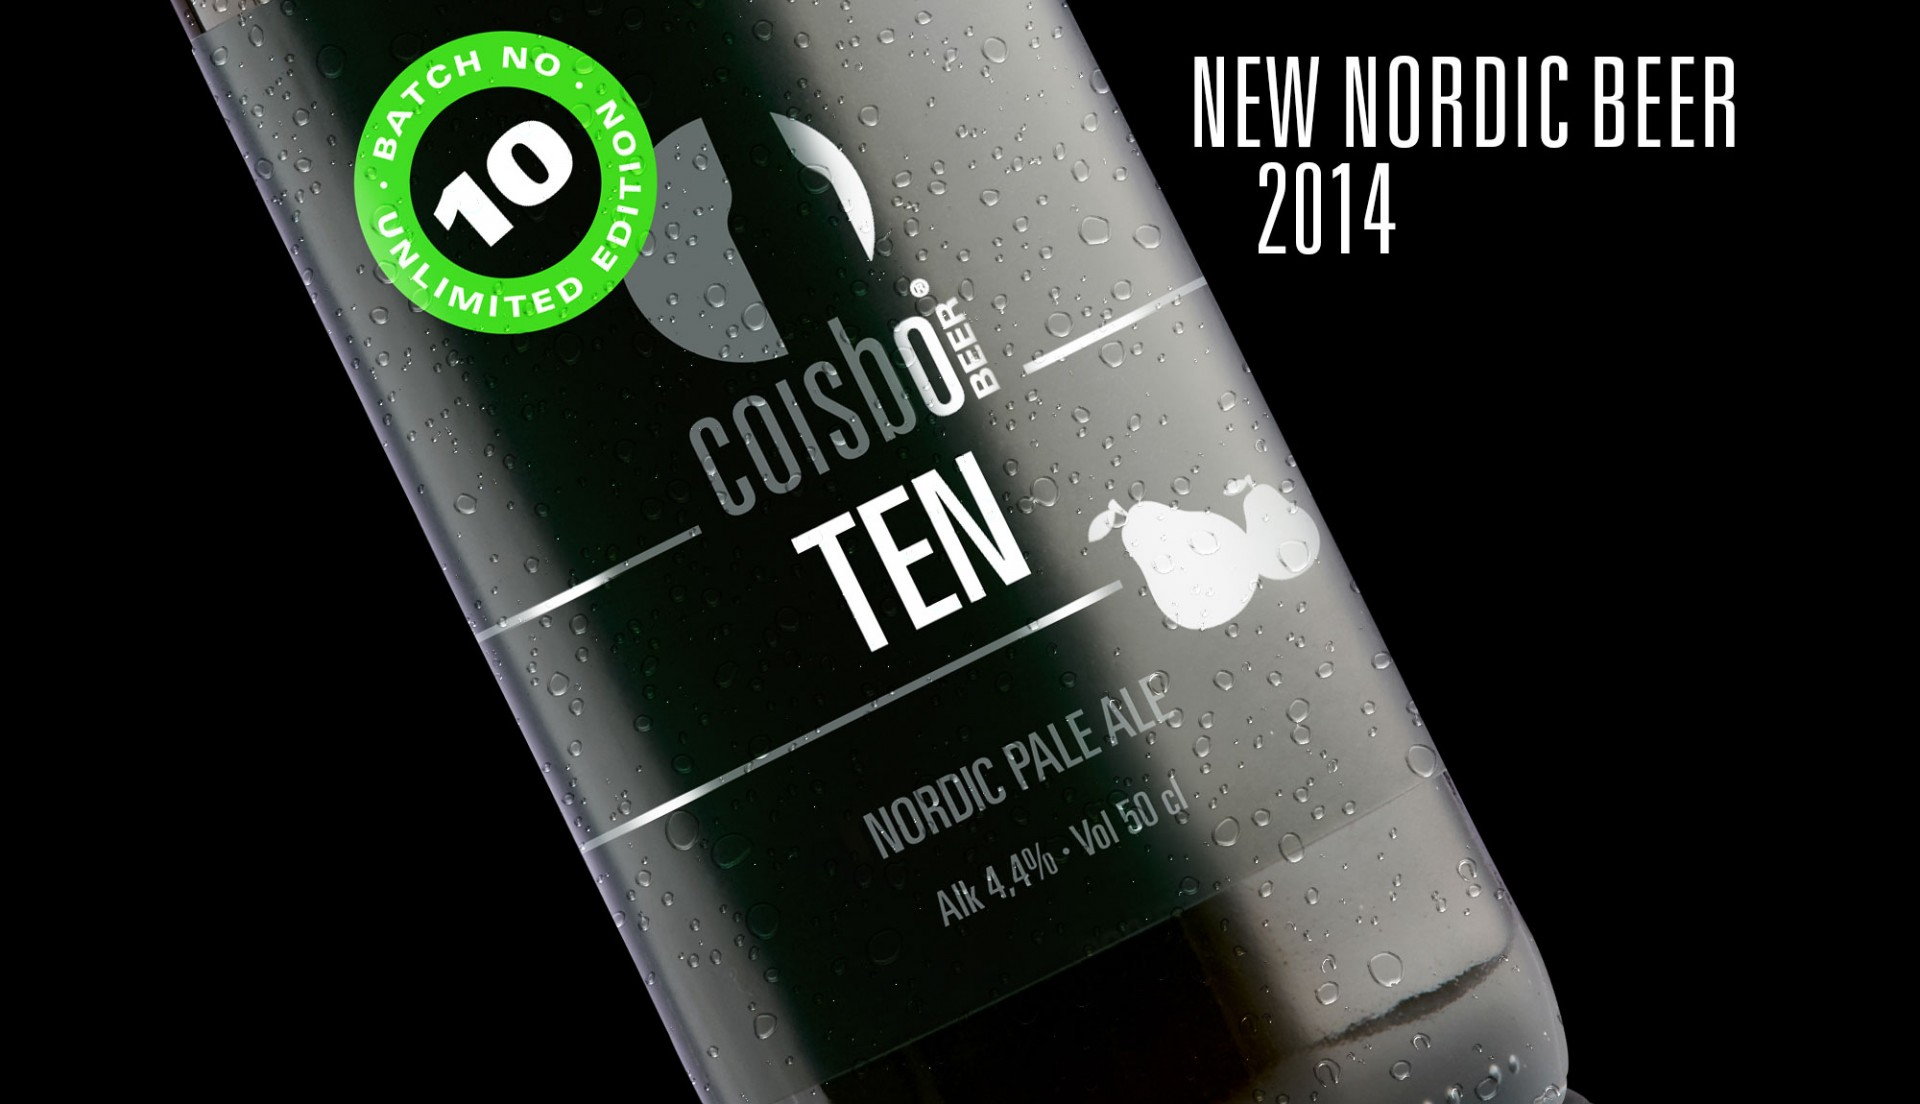 Winner of 'New Nordic Beer 2014′